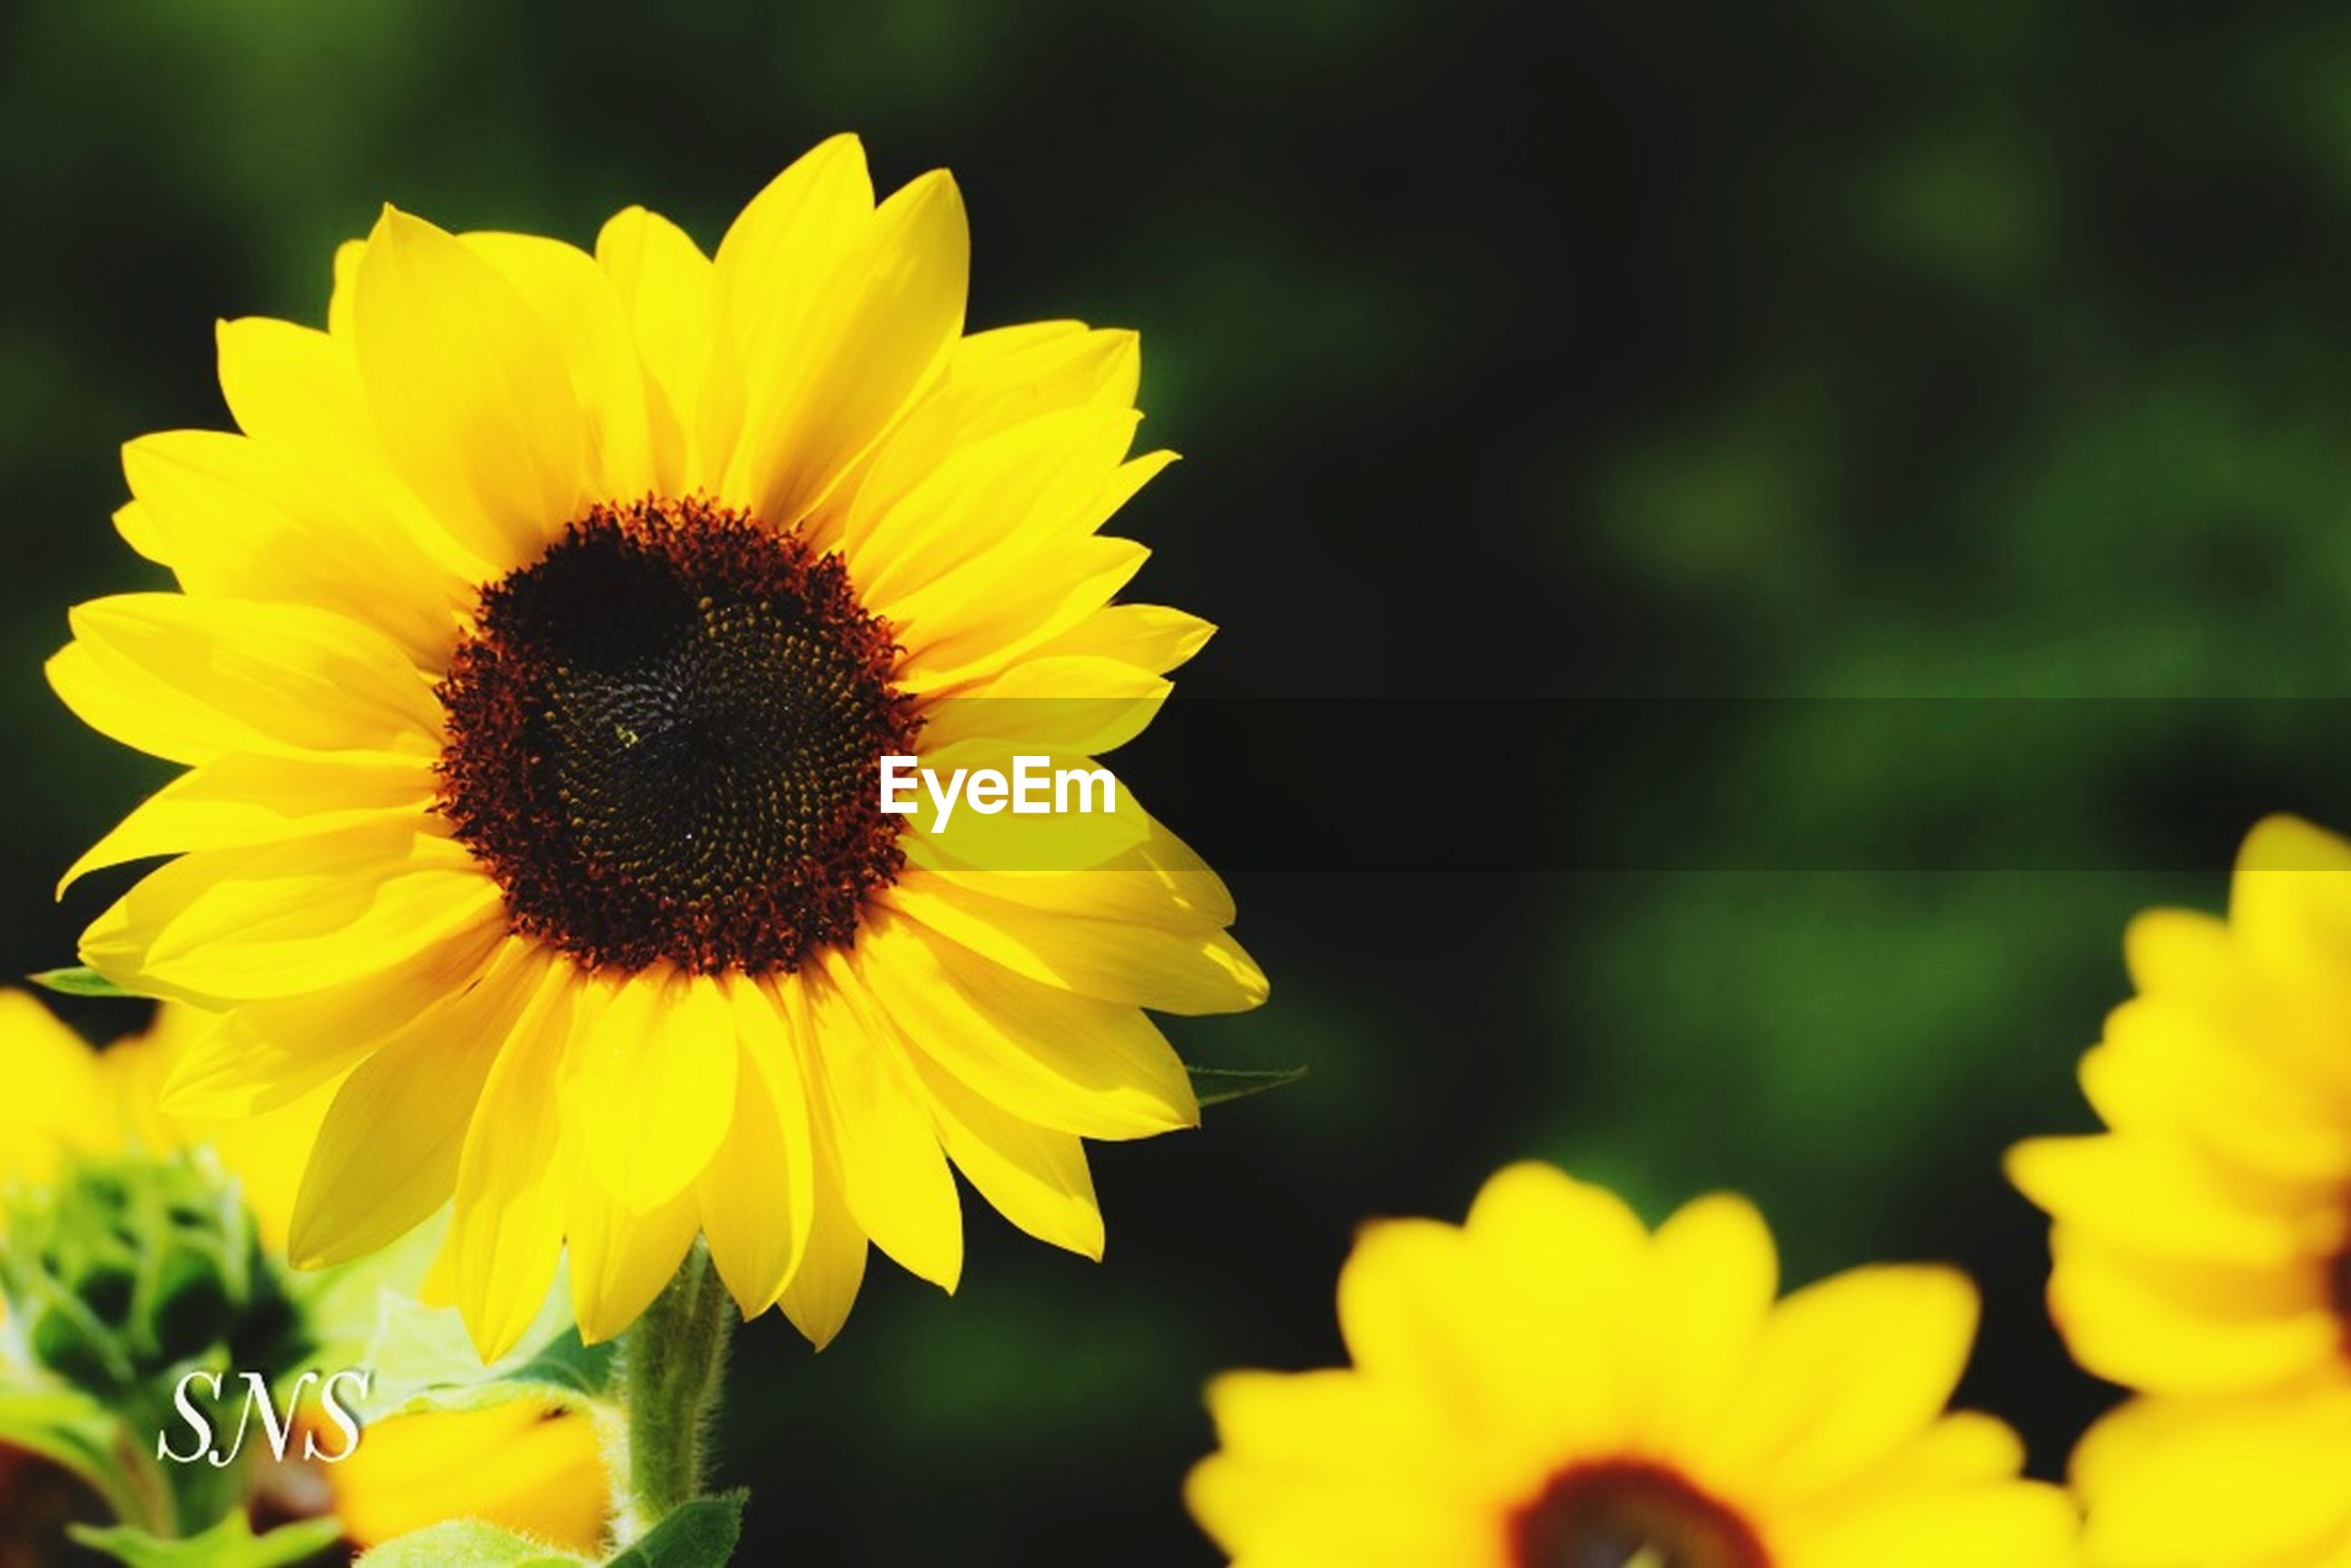 flowering plant, flower, yellow, flower head, fragility, vulnerability, petal, inflorescence, growth, freshness, plant, beauty in nature, close-up, pollen, nature, sunflower, focus on foreground, no people, outdoors, selective focus, pollination